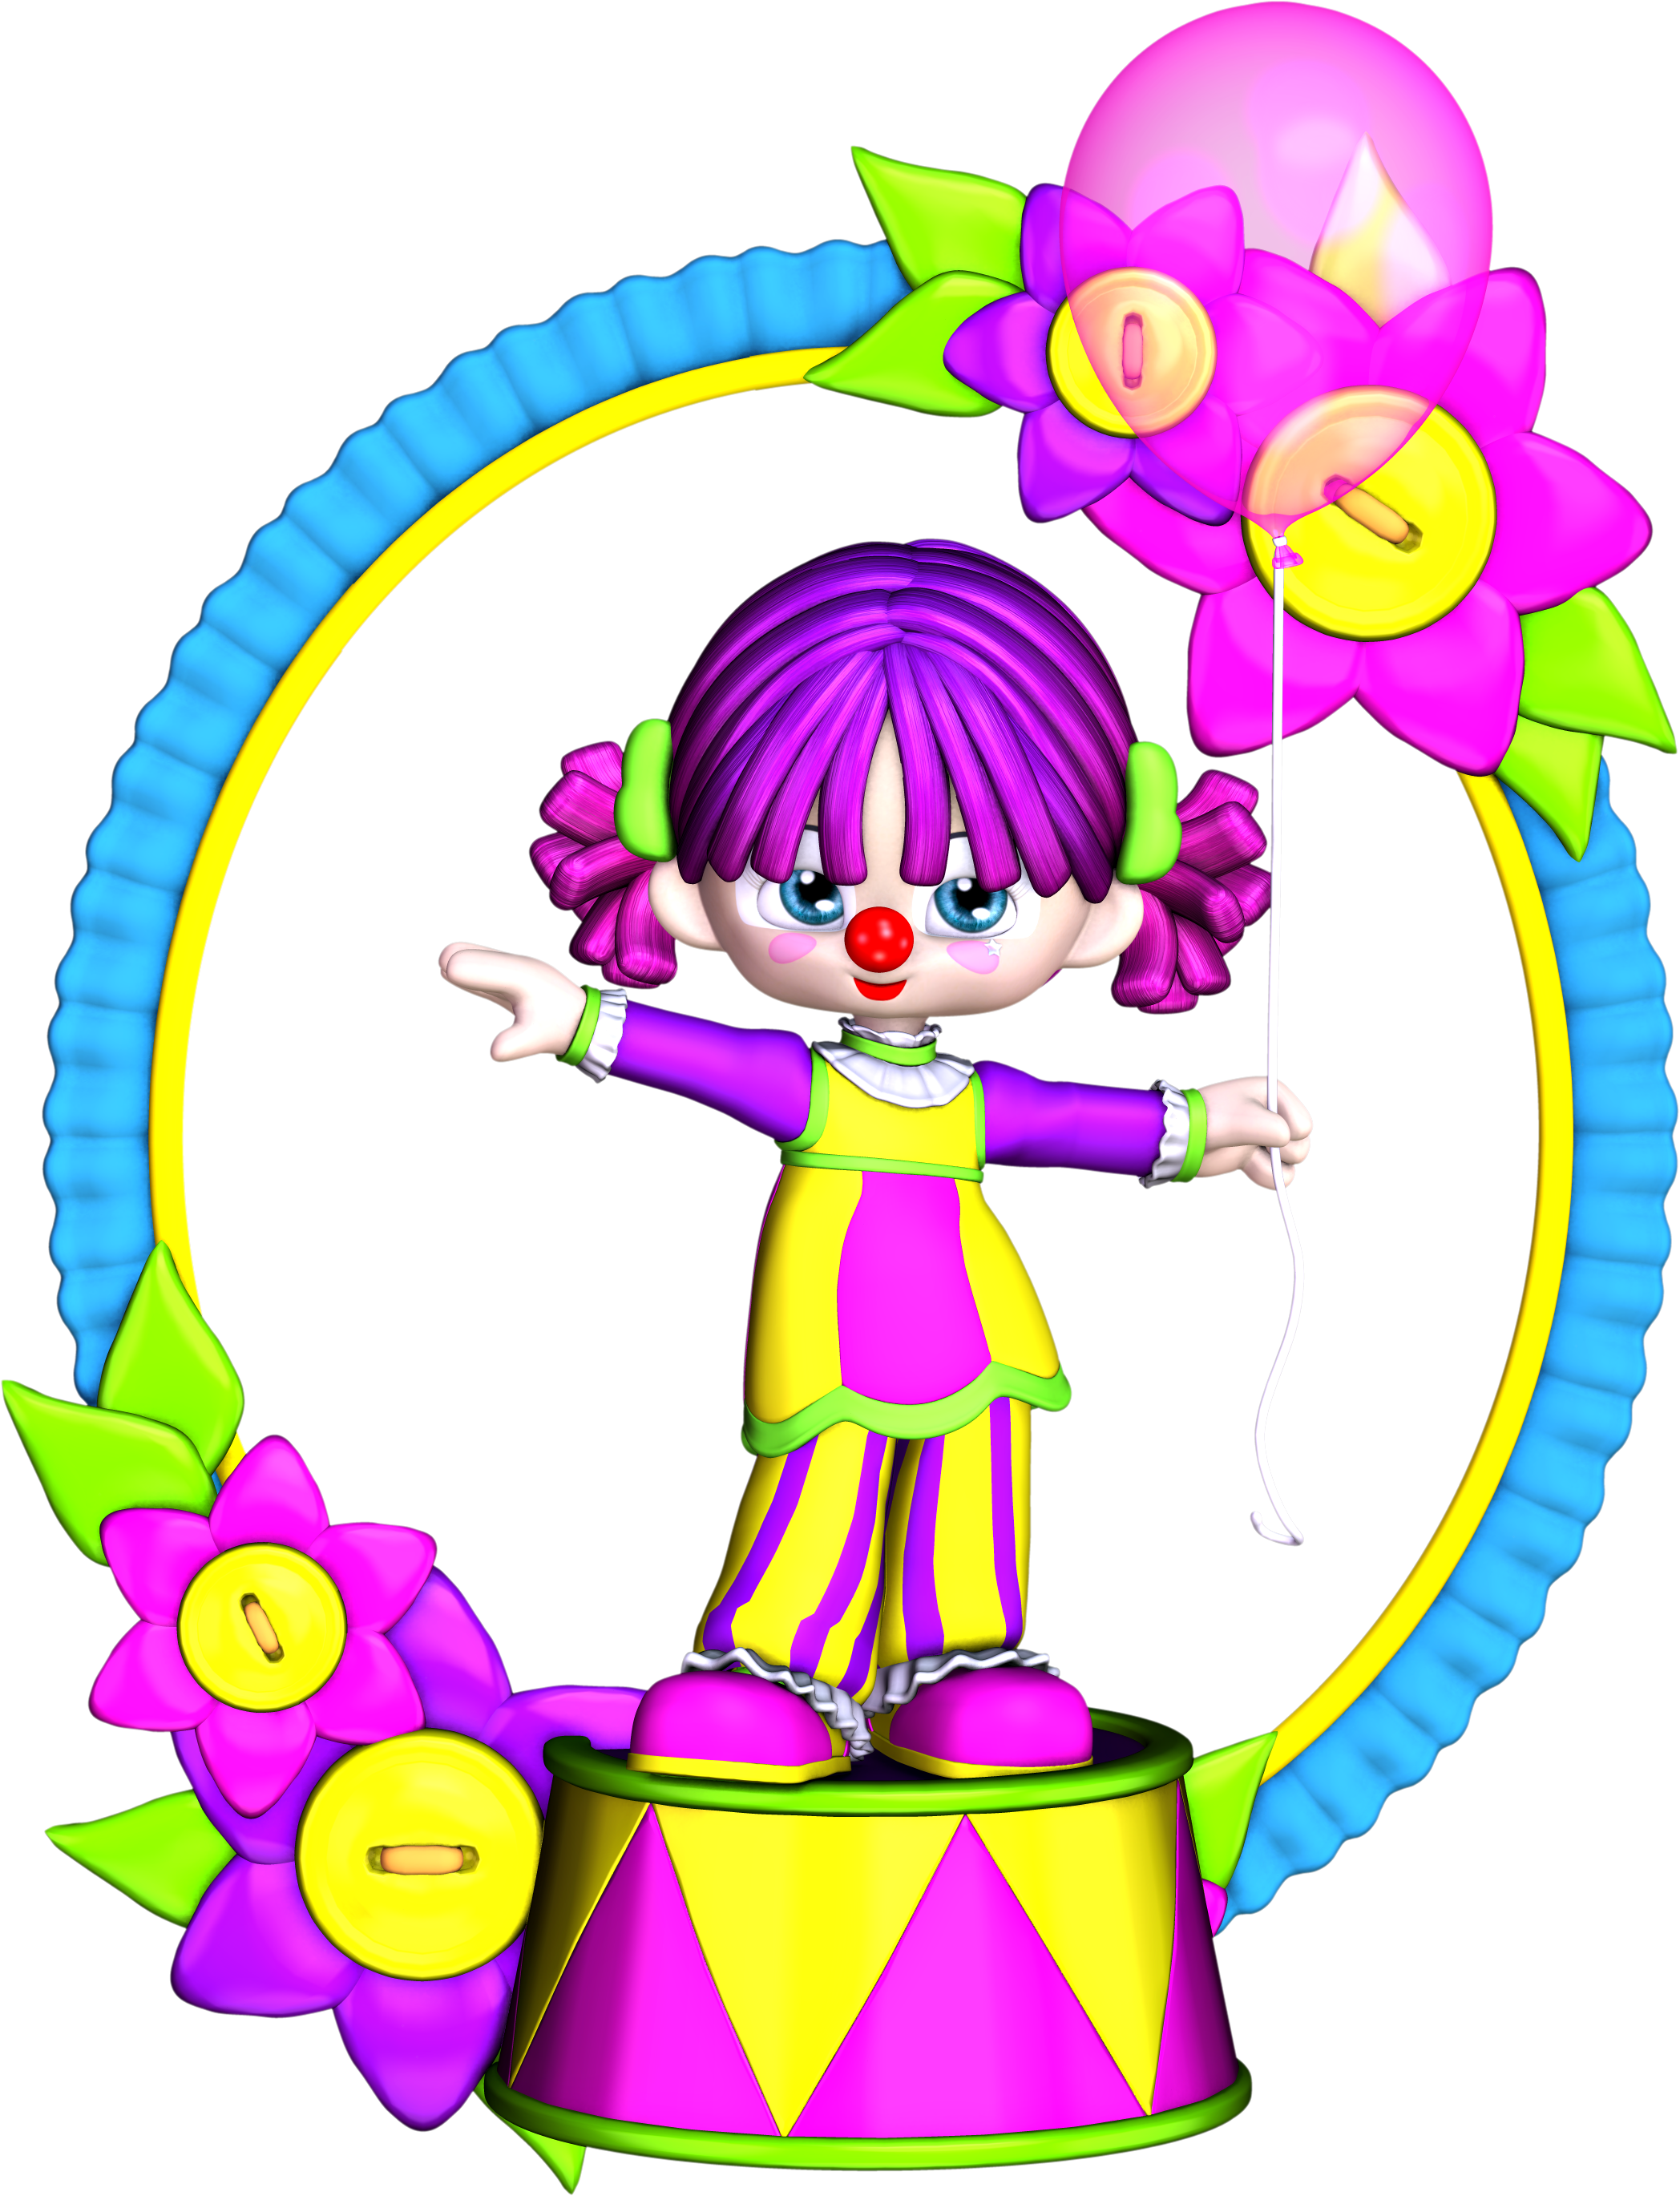 free birthday clown clipart free clown clip art images free crown clipart without background